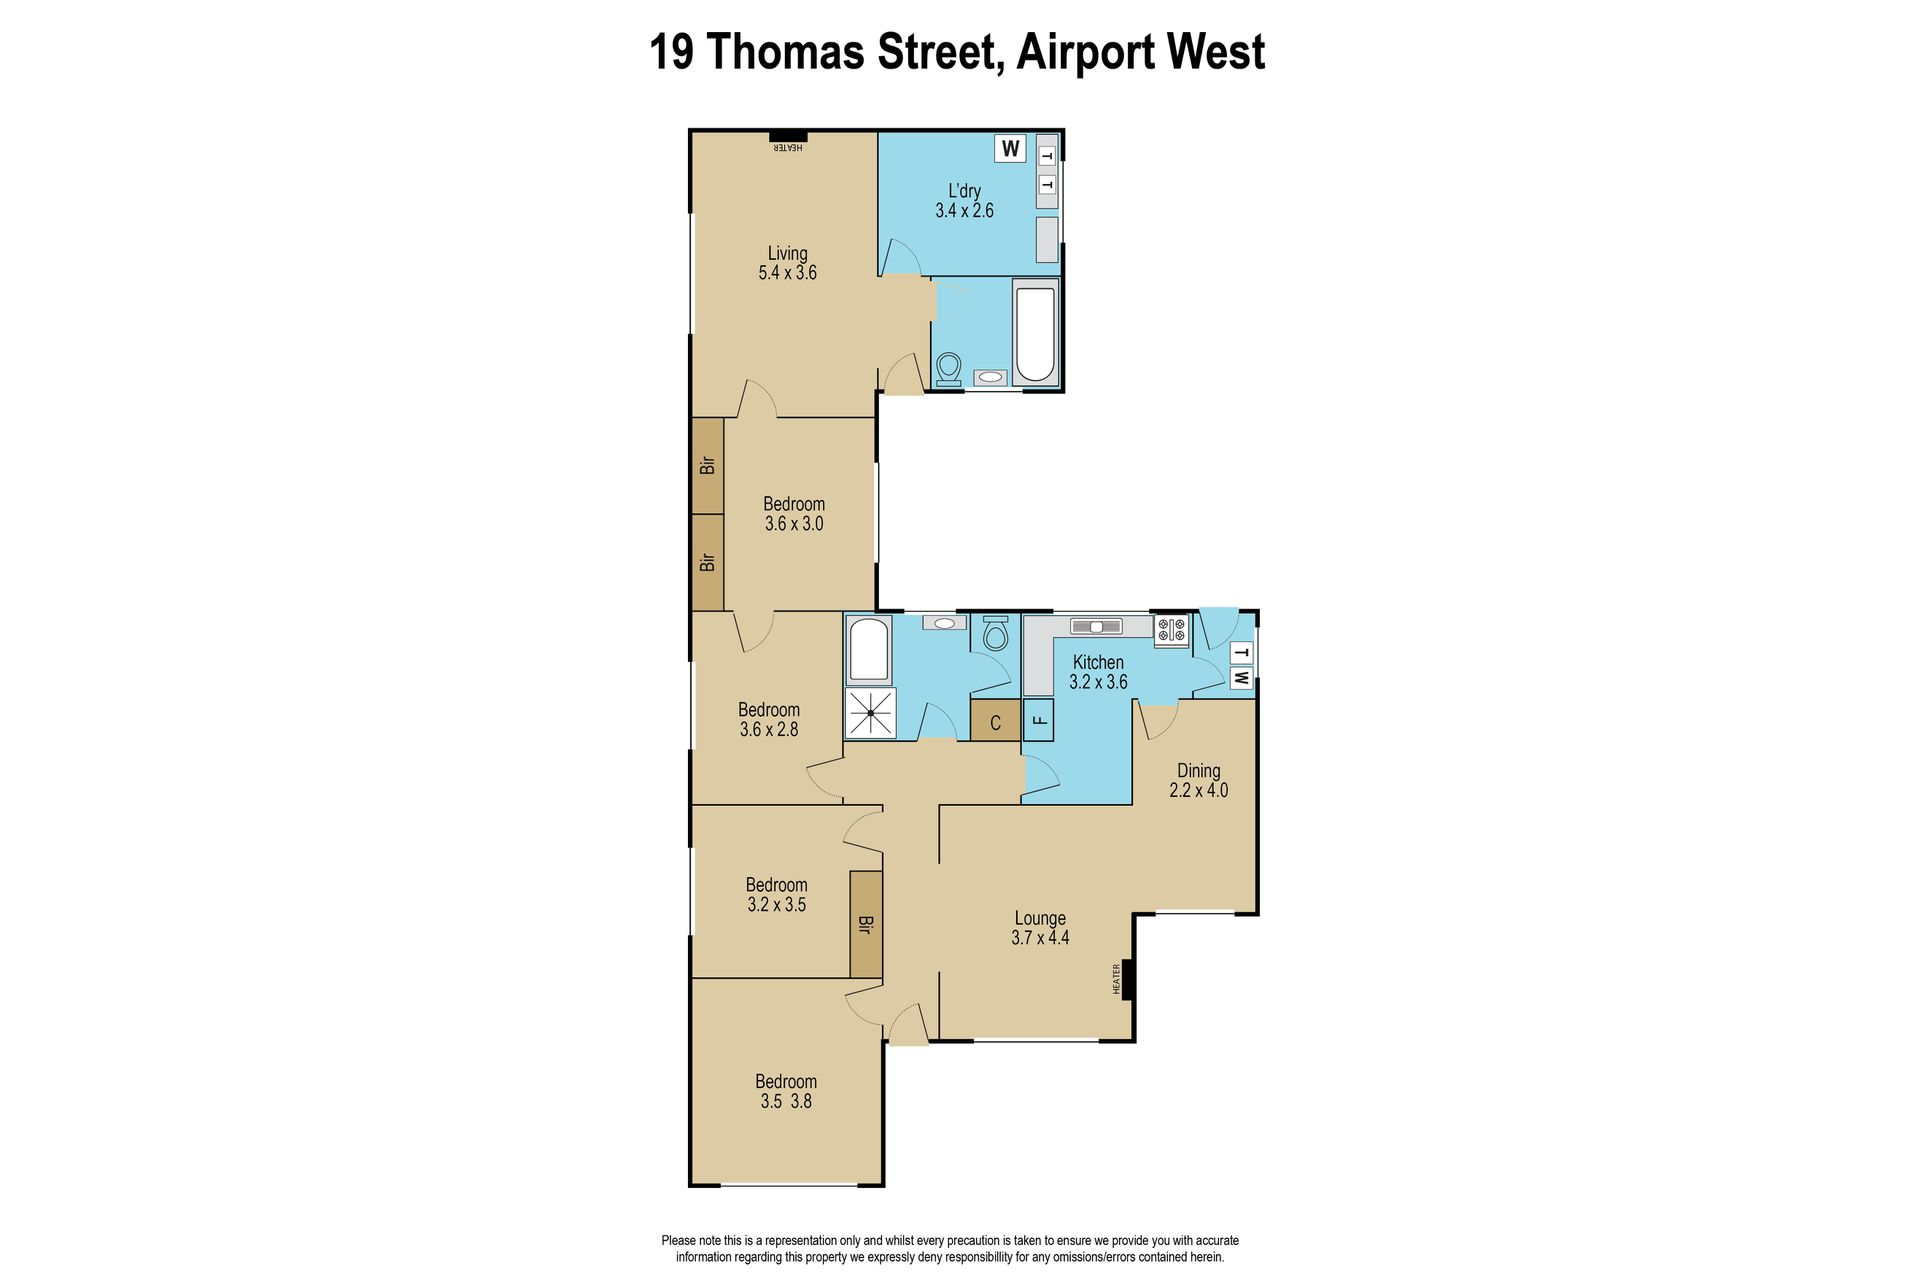 19 Thomas Street, Airport West